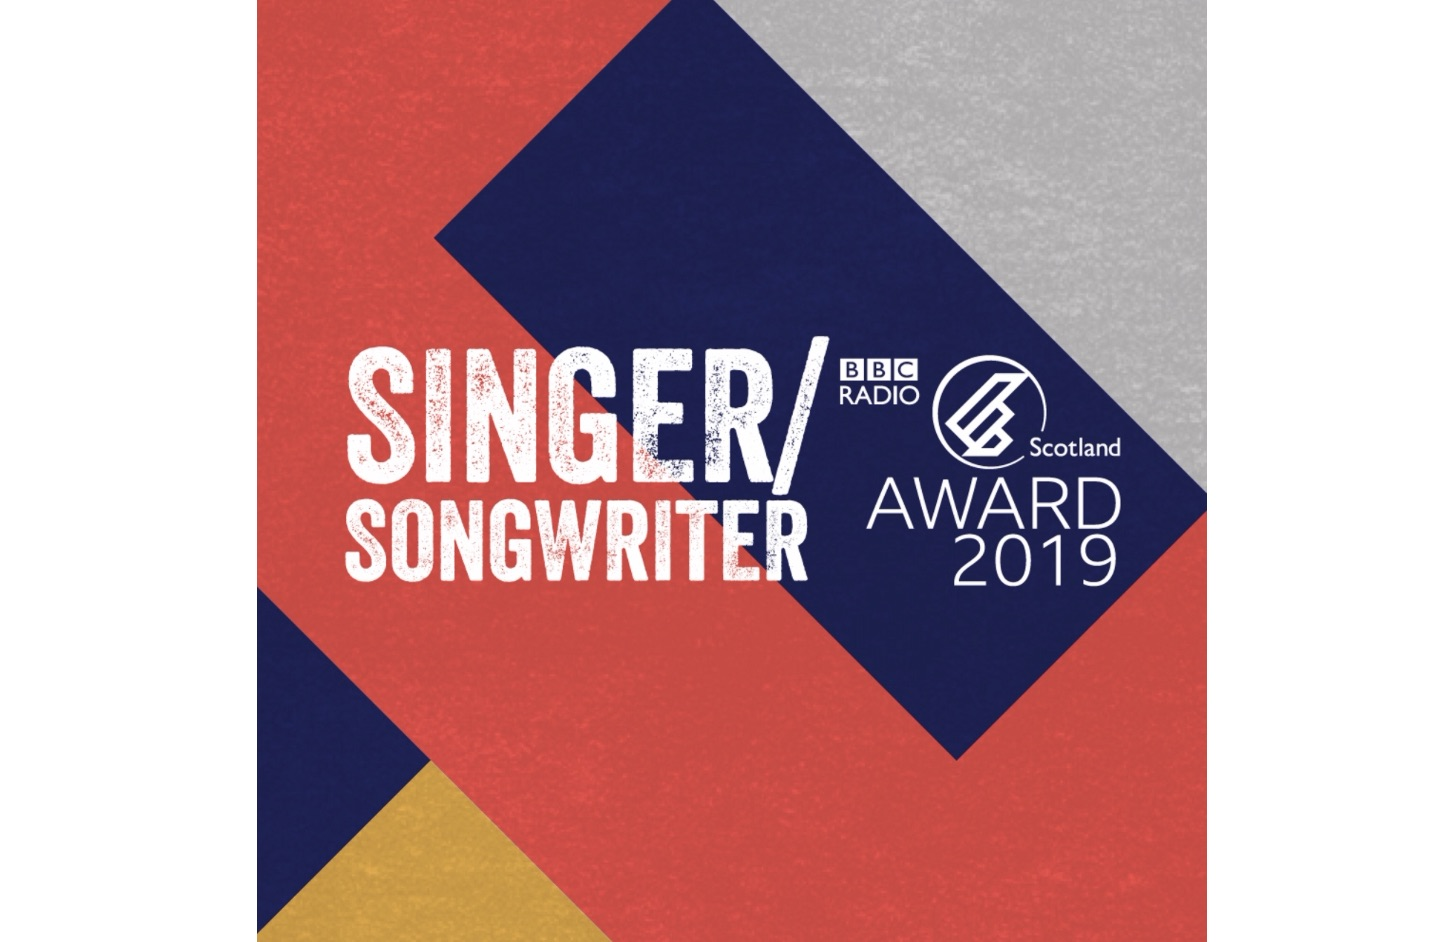 Media release: BBC Radio Scotland launches search for Scotland's Singer/Songwriter of the Year